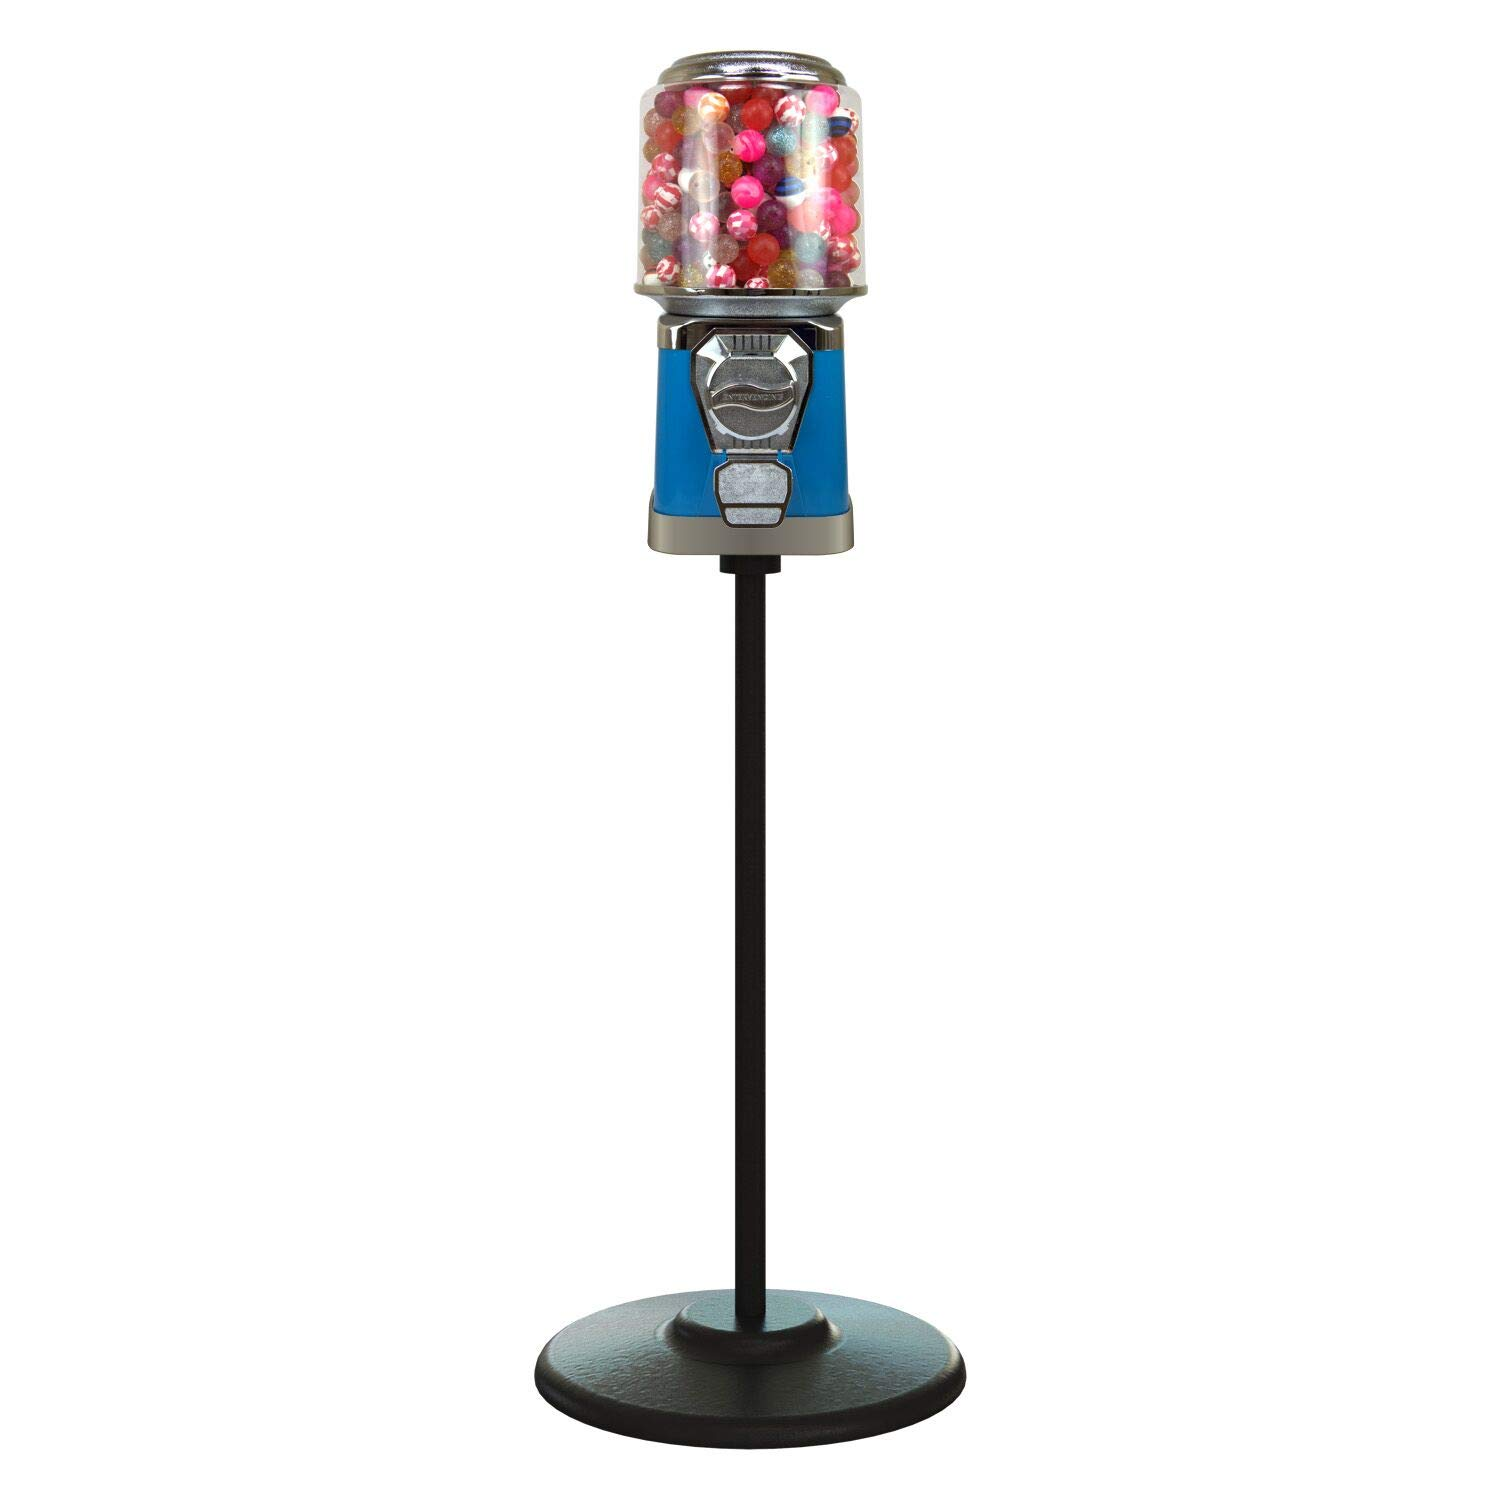 Austin Mall Gumball Machine with Stand - Ranking integrated 1st place Home Gum Vending Bal Blue